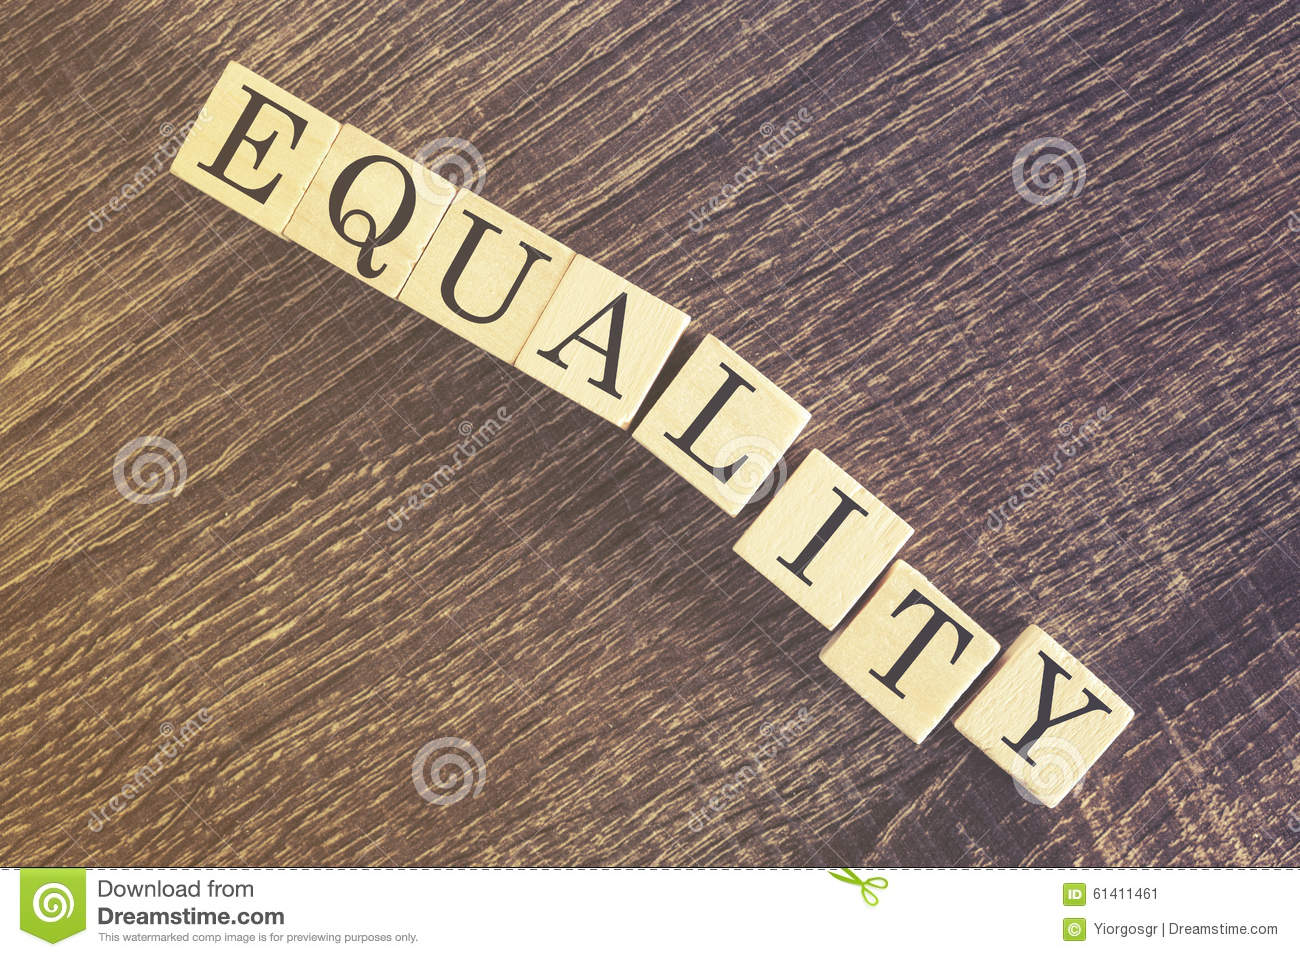 Equality message message